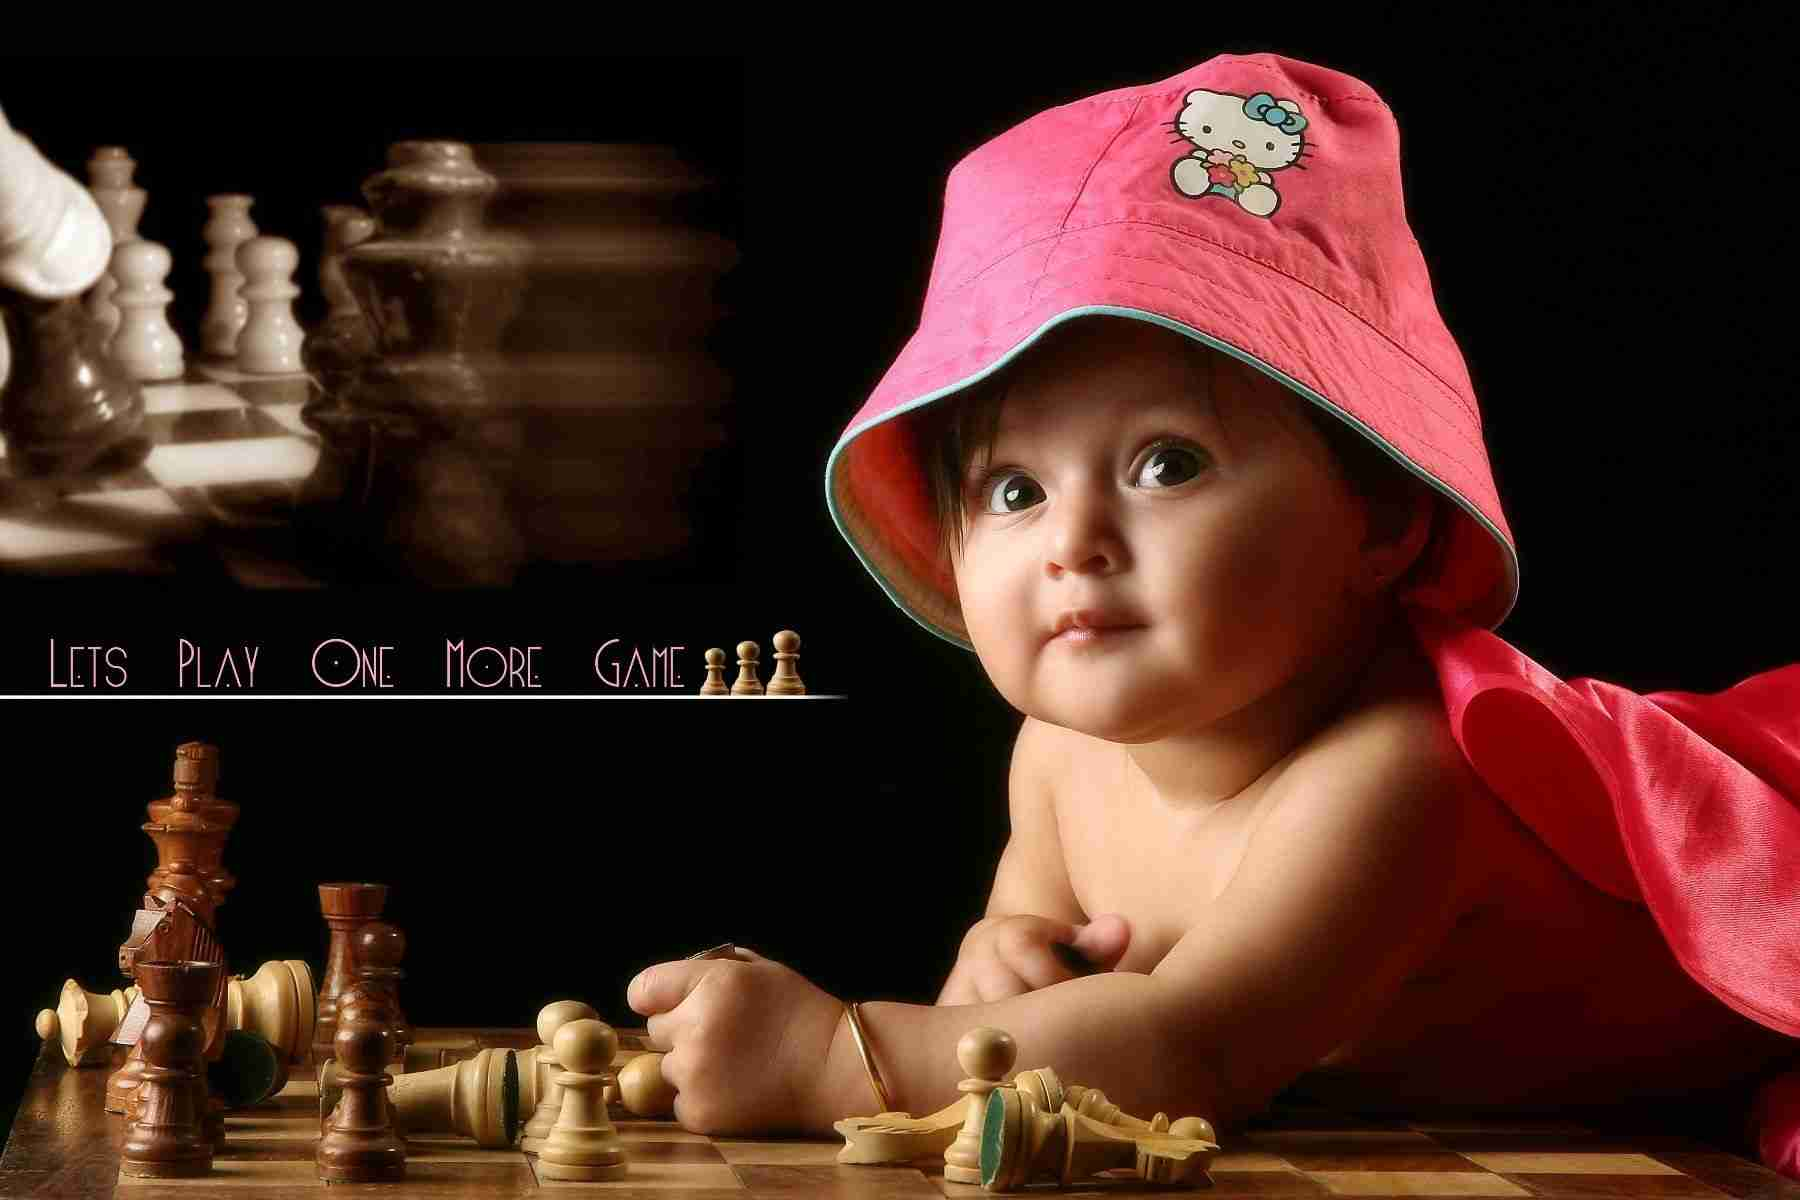 Download Cute Babies Images For Mobile Tweetstree